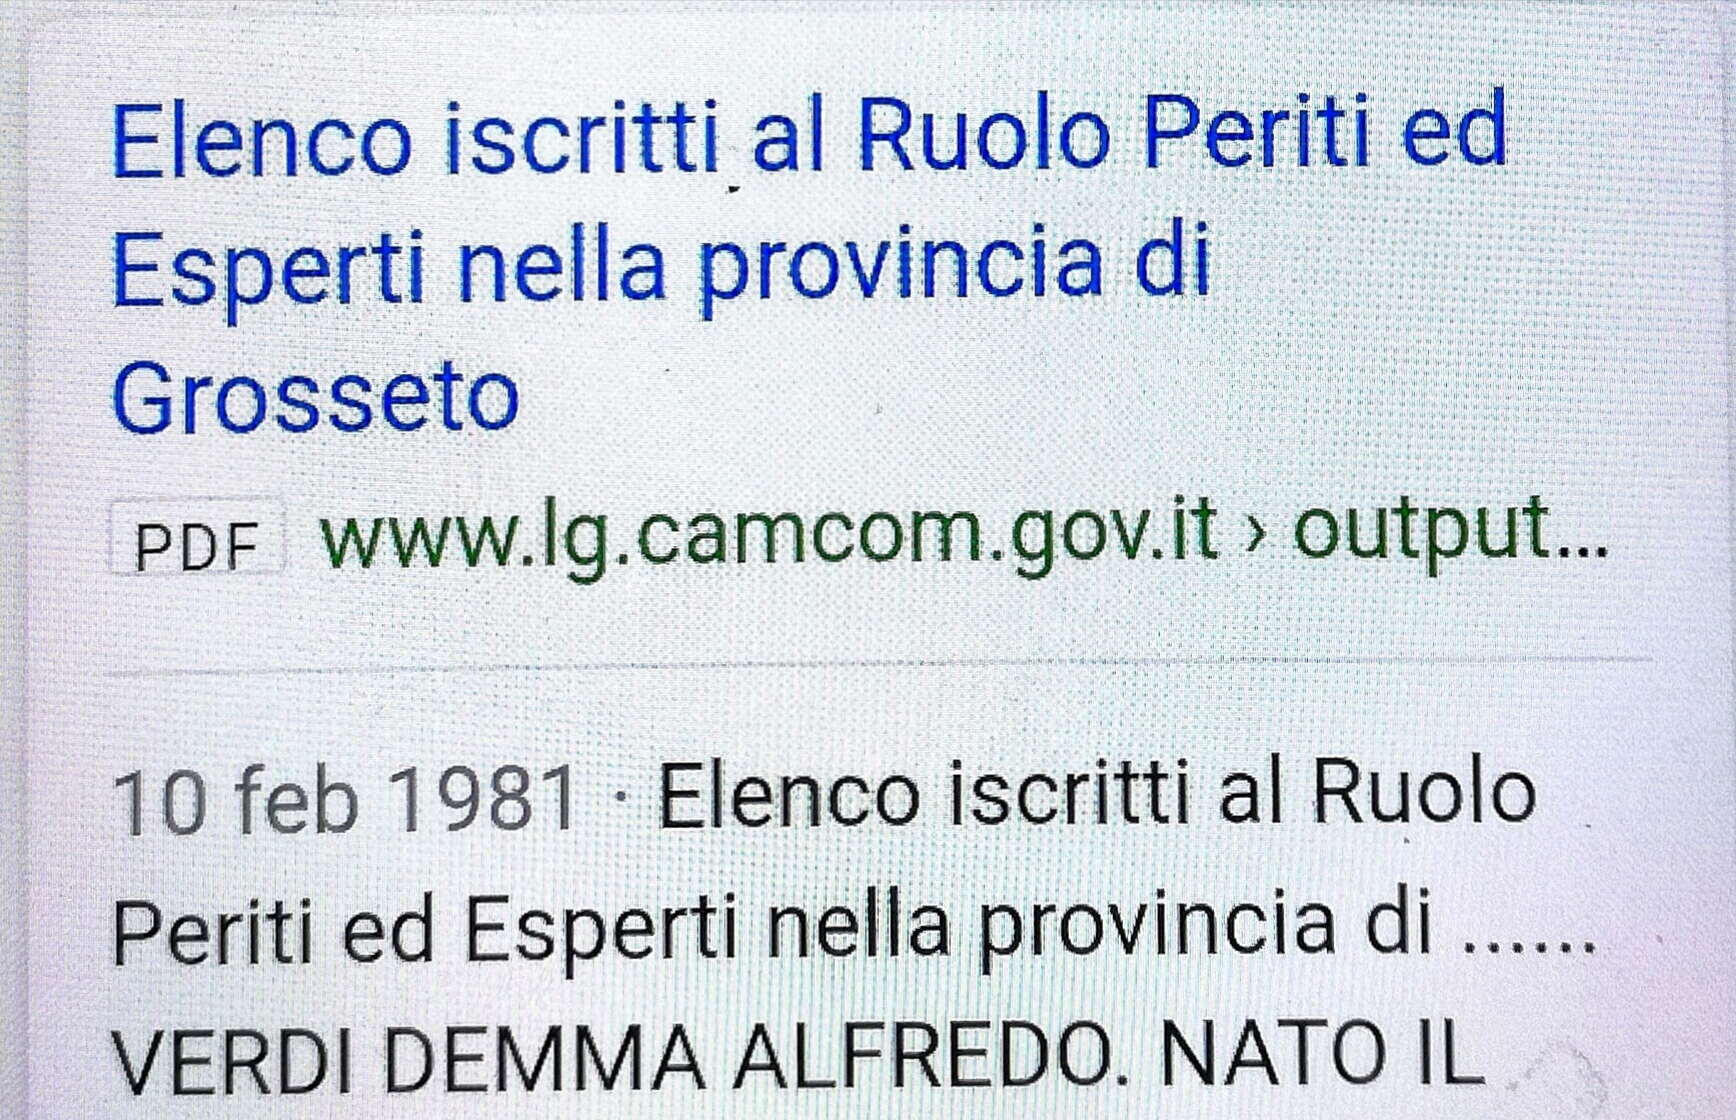 Elenco iscritti Ruolo Periti ed Esperti